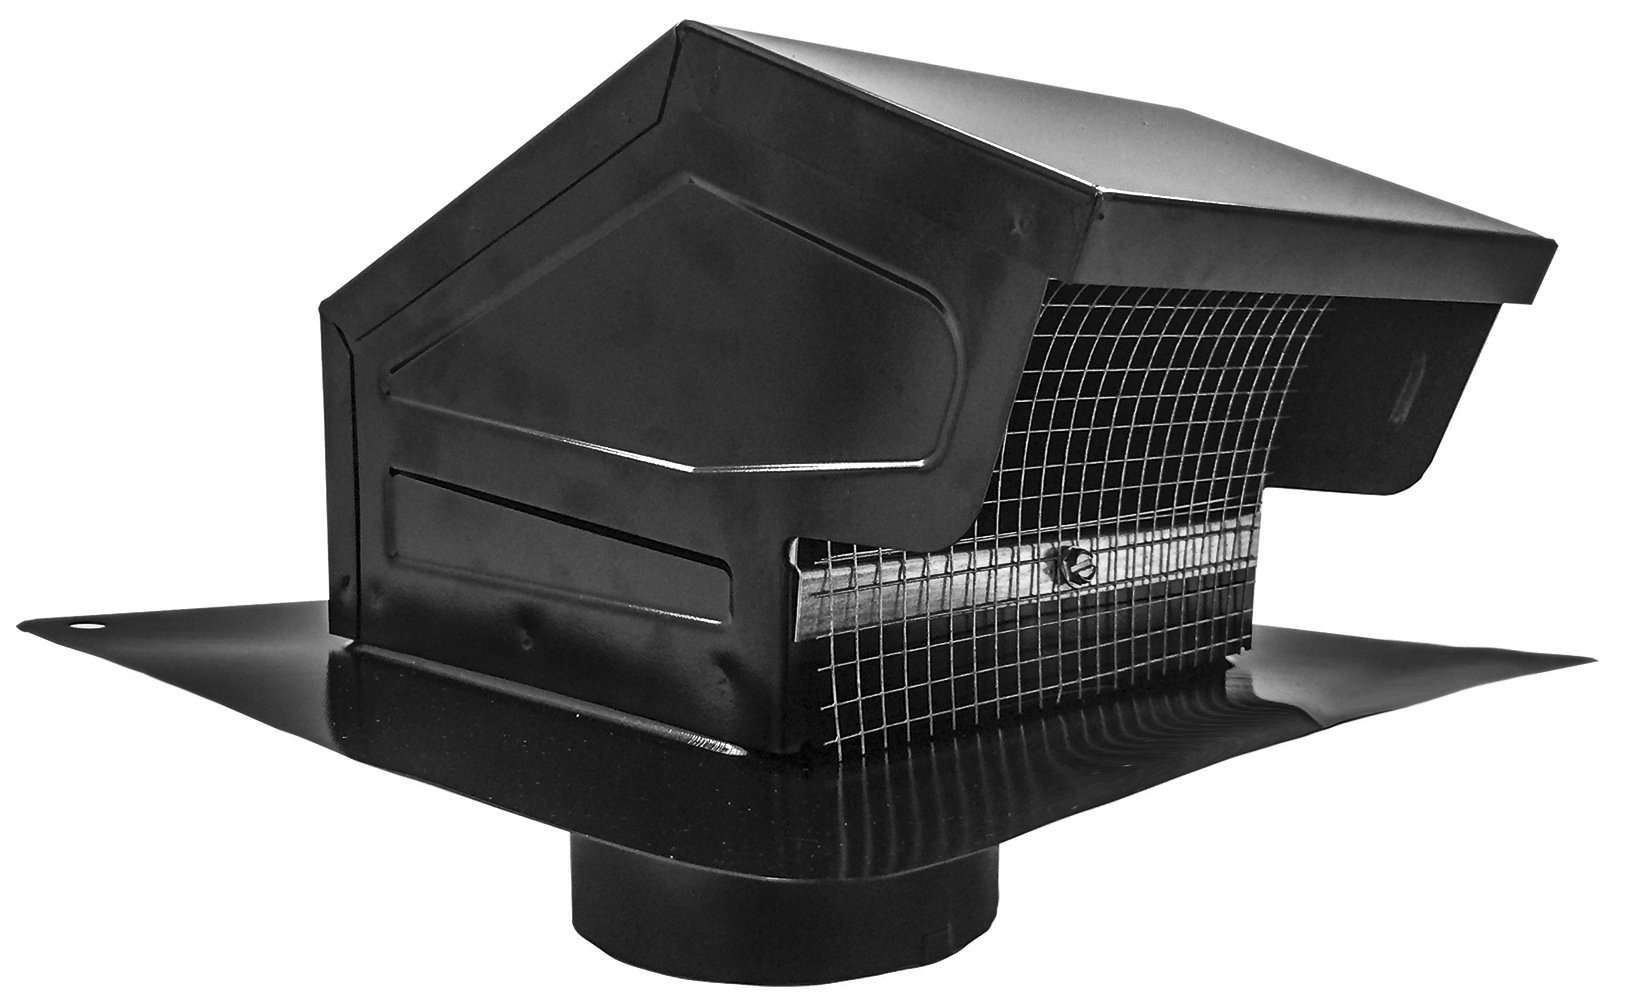 Builder's Best 012635 Galvanized Steel Roof Vent Cap with Removable Screen & Damper, 4'' Diameter Collar, Black by Builder's Best